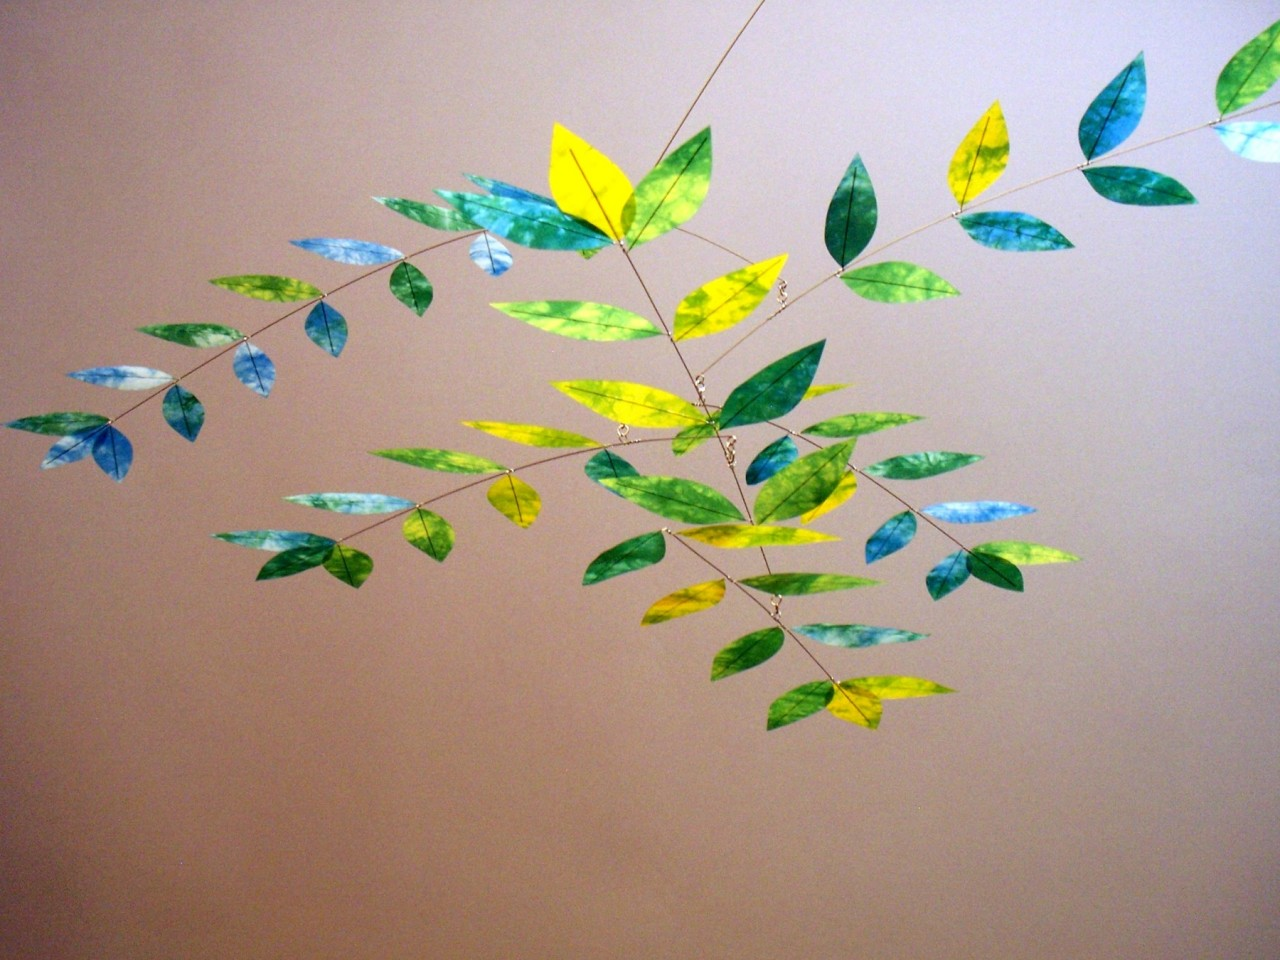 Moon-Lily Dappled Leaf Mobile in Yellow/Green/Turquoise